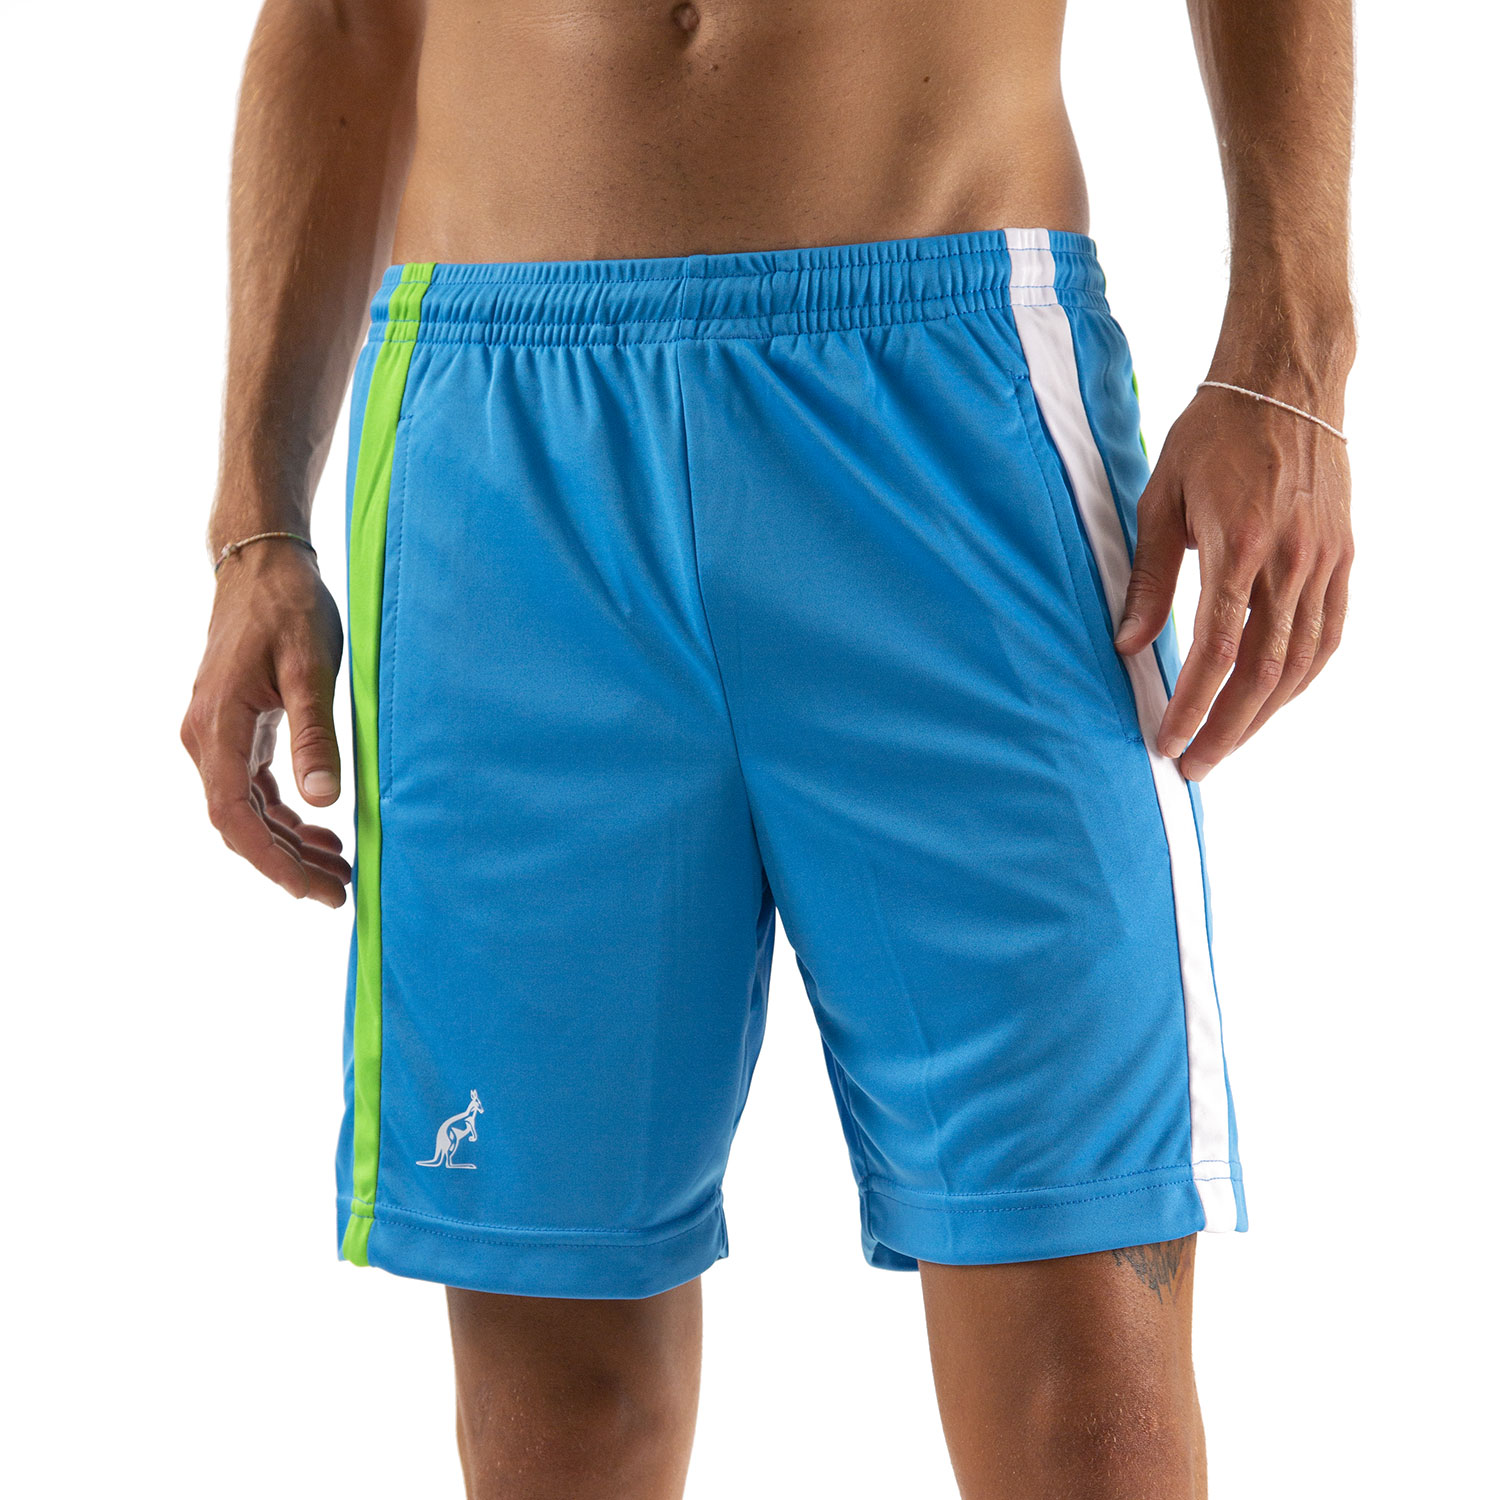 Australian Ace Lines 7in Shorts - Turchese/Bianco/Kawasaki